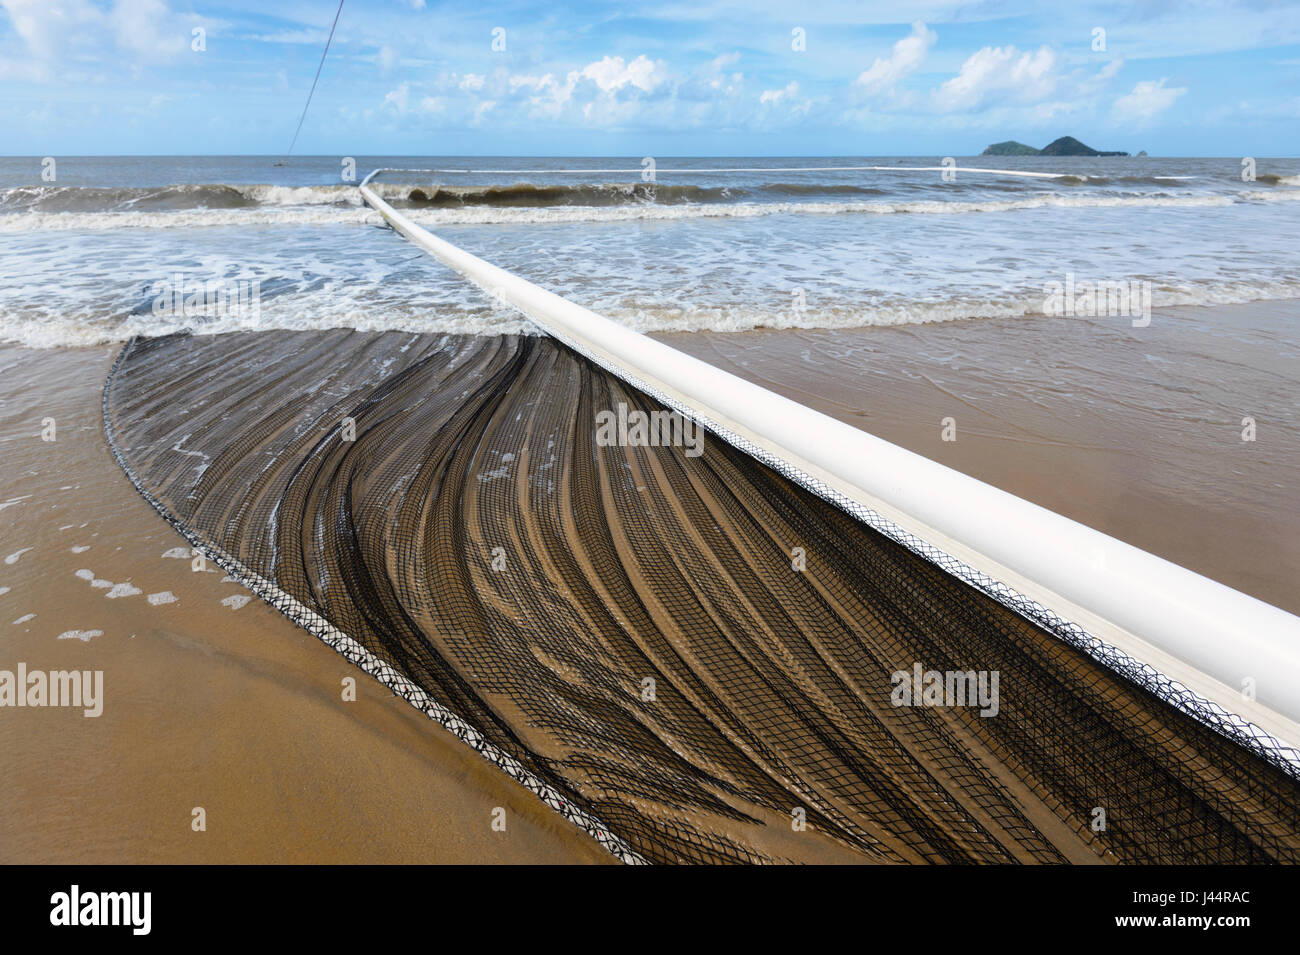 Stinger net to protect swimmers in the Coral Sea, Ellis Beach, Far North Queensland, FNQ, Australia - Stock Image